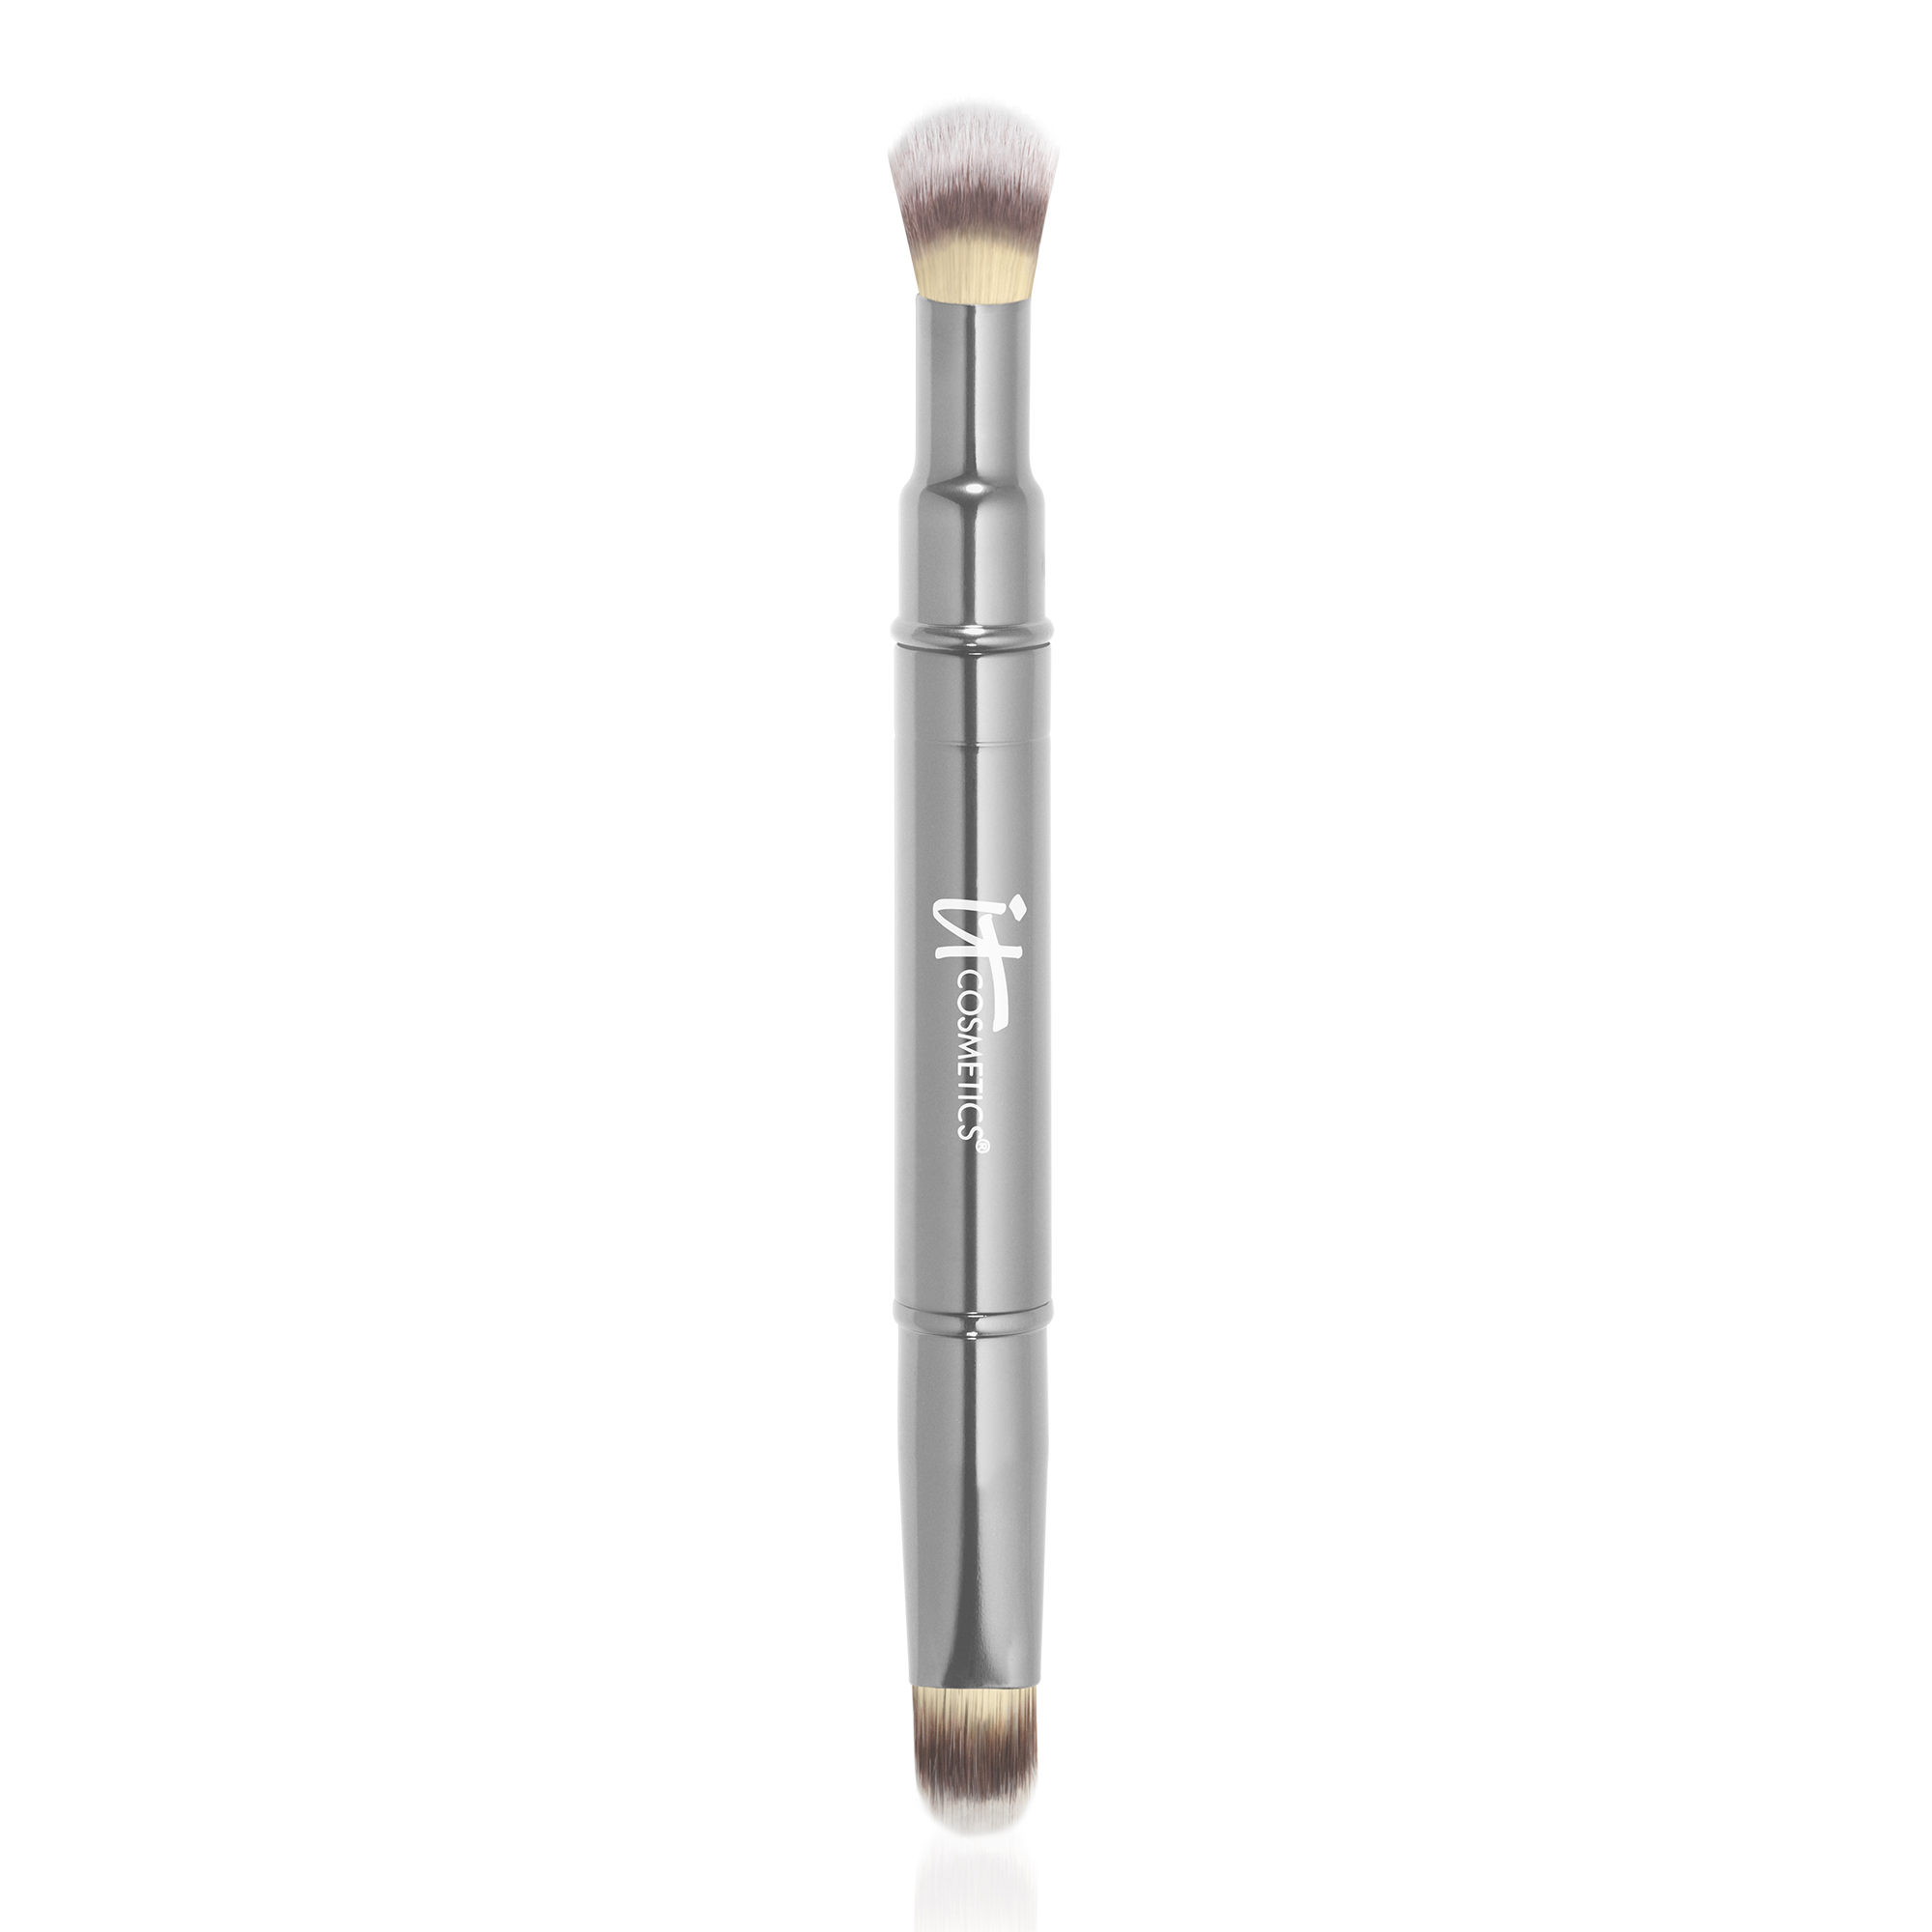 Heavenly Luxe™ Dual Airbrush Concealer Brush #2